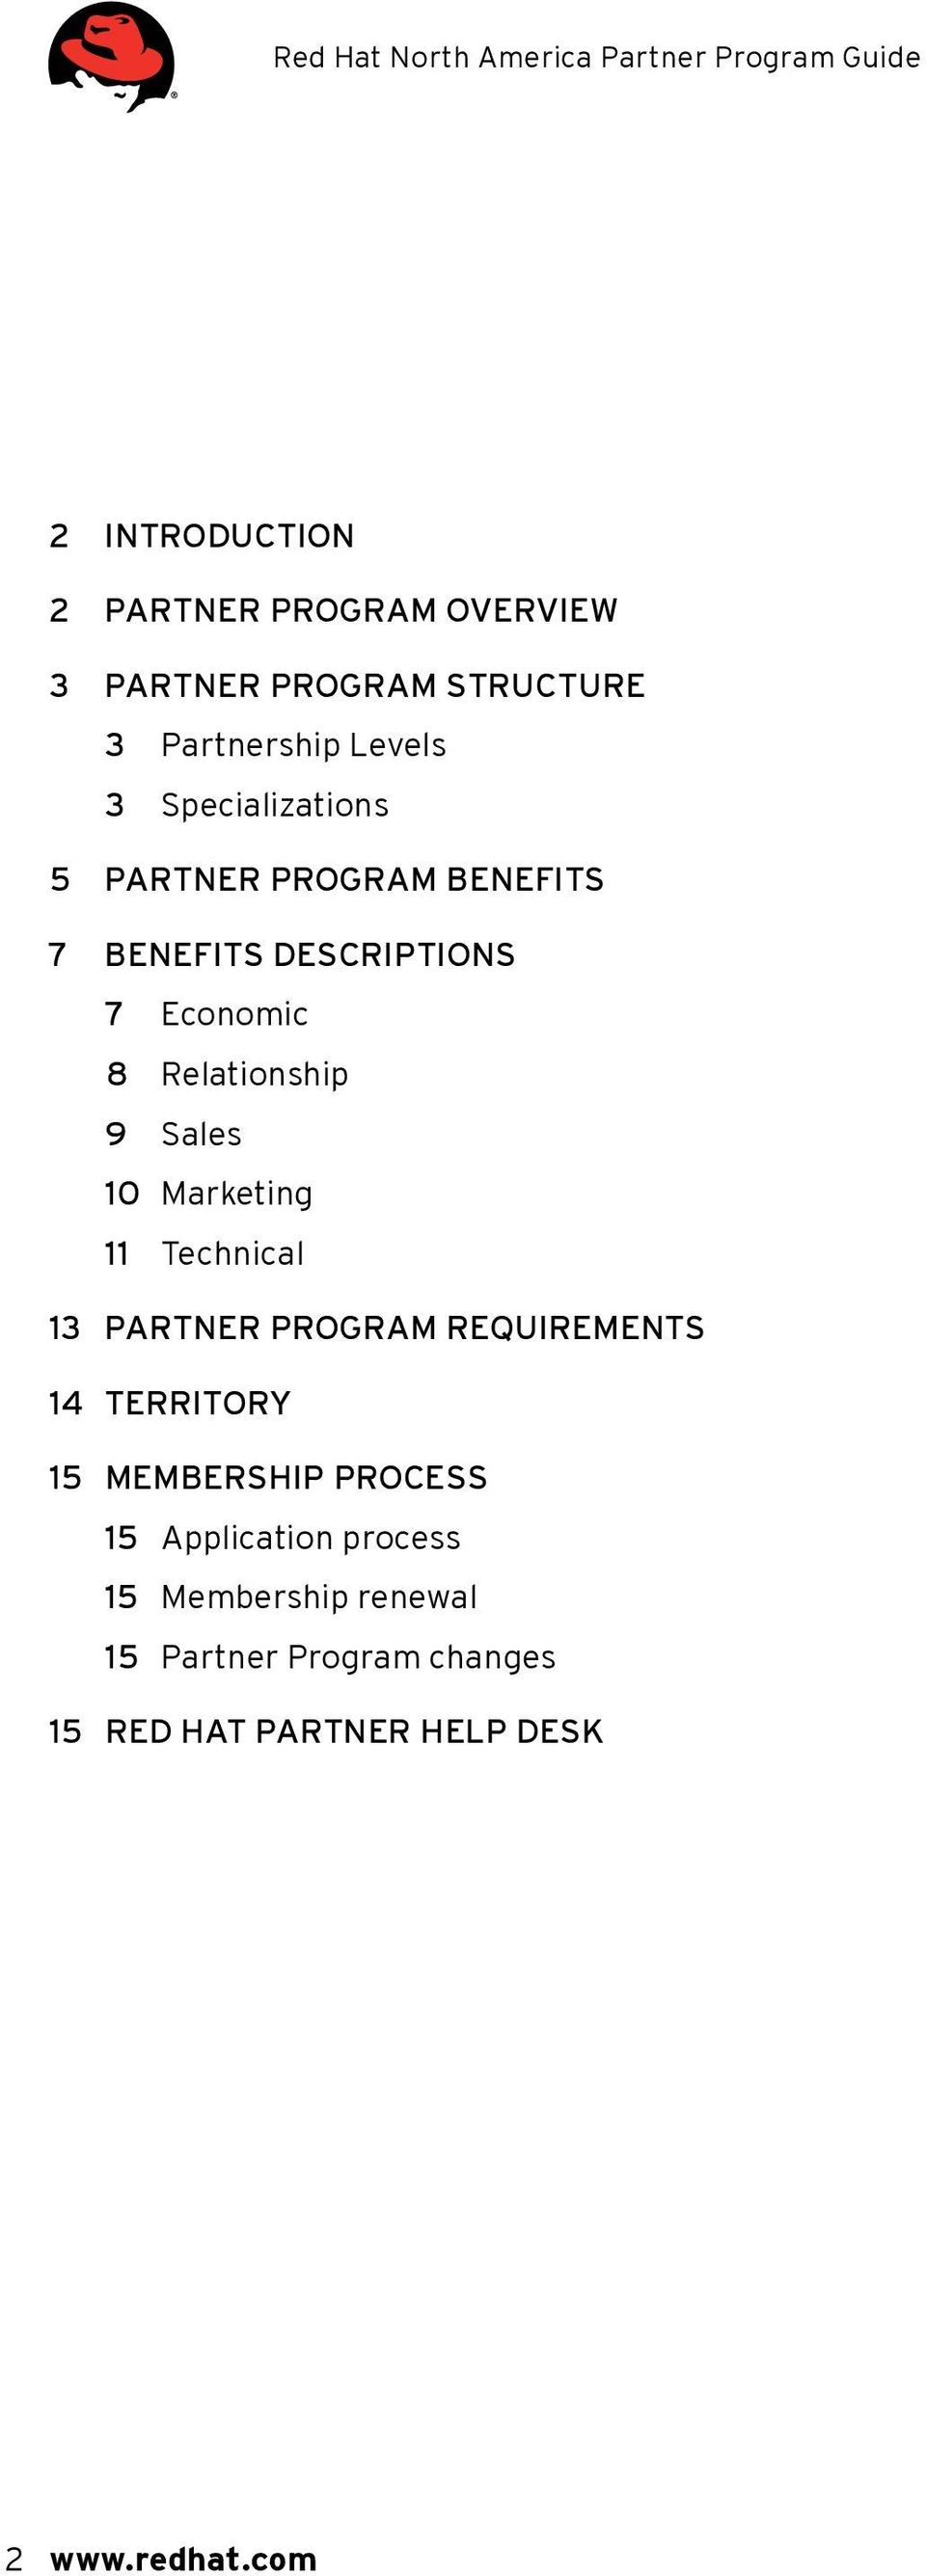 10 Marketing 11 Technical 13 Partner Program requirements 14 Territory 15 Membership process 15